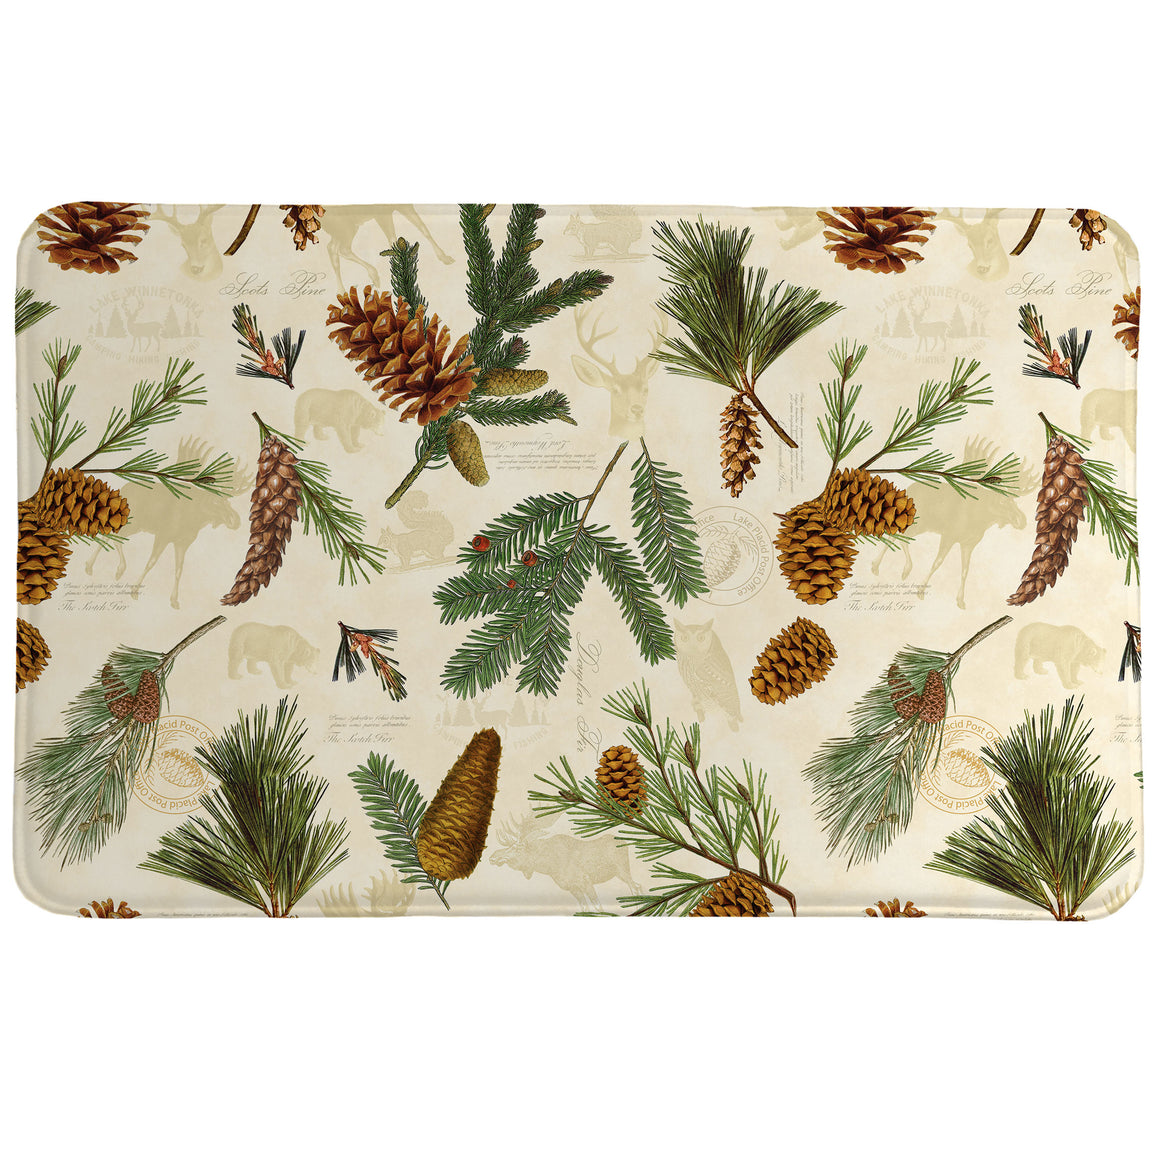 Pinecone Memory Foam Rug features a pattern of pinecones and leaves.